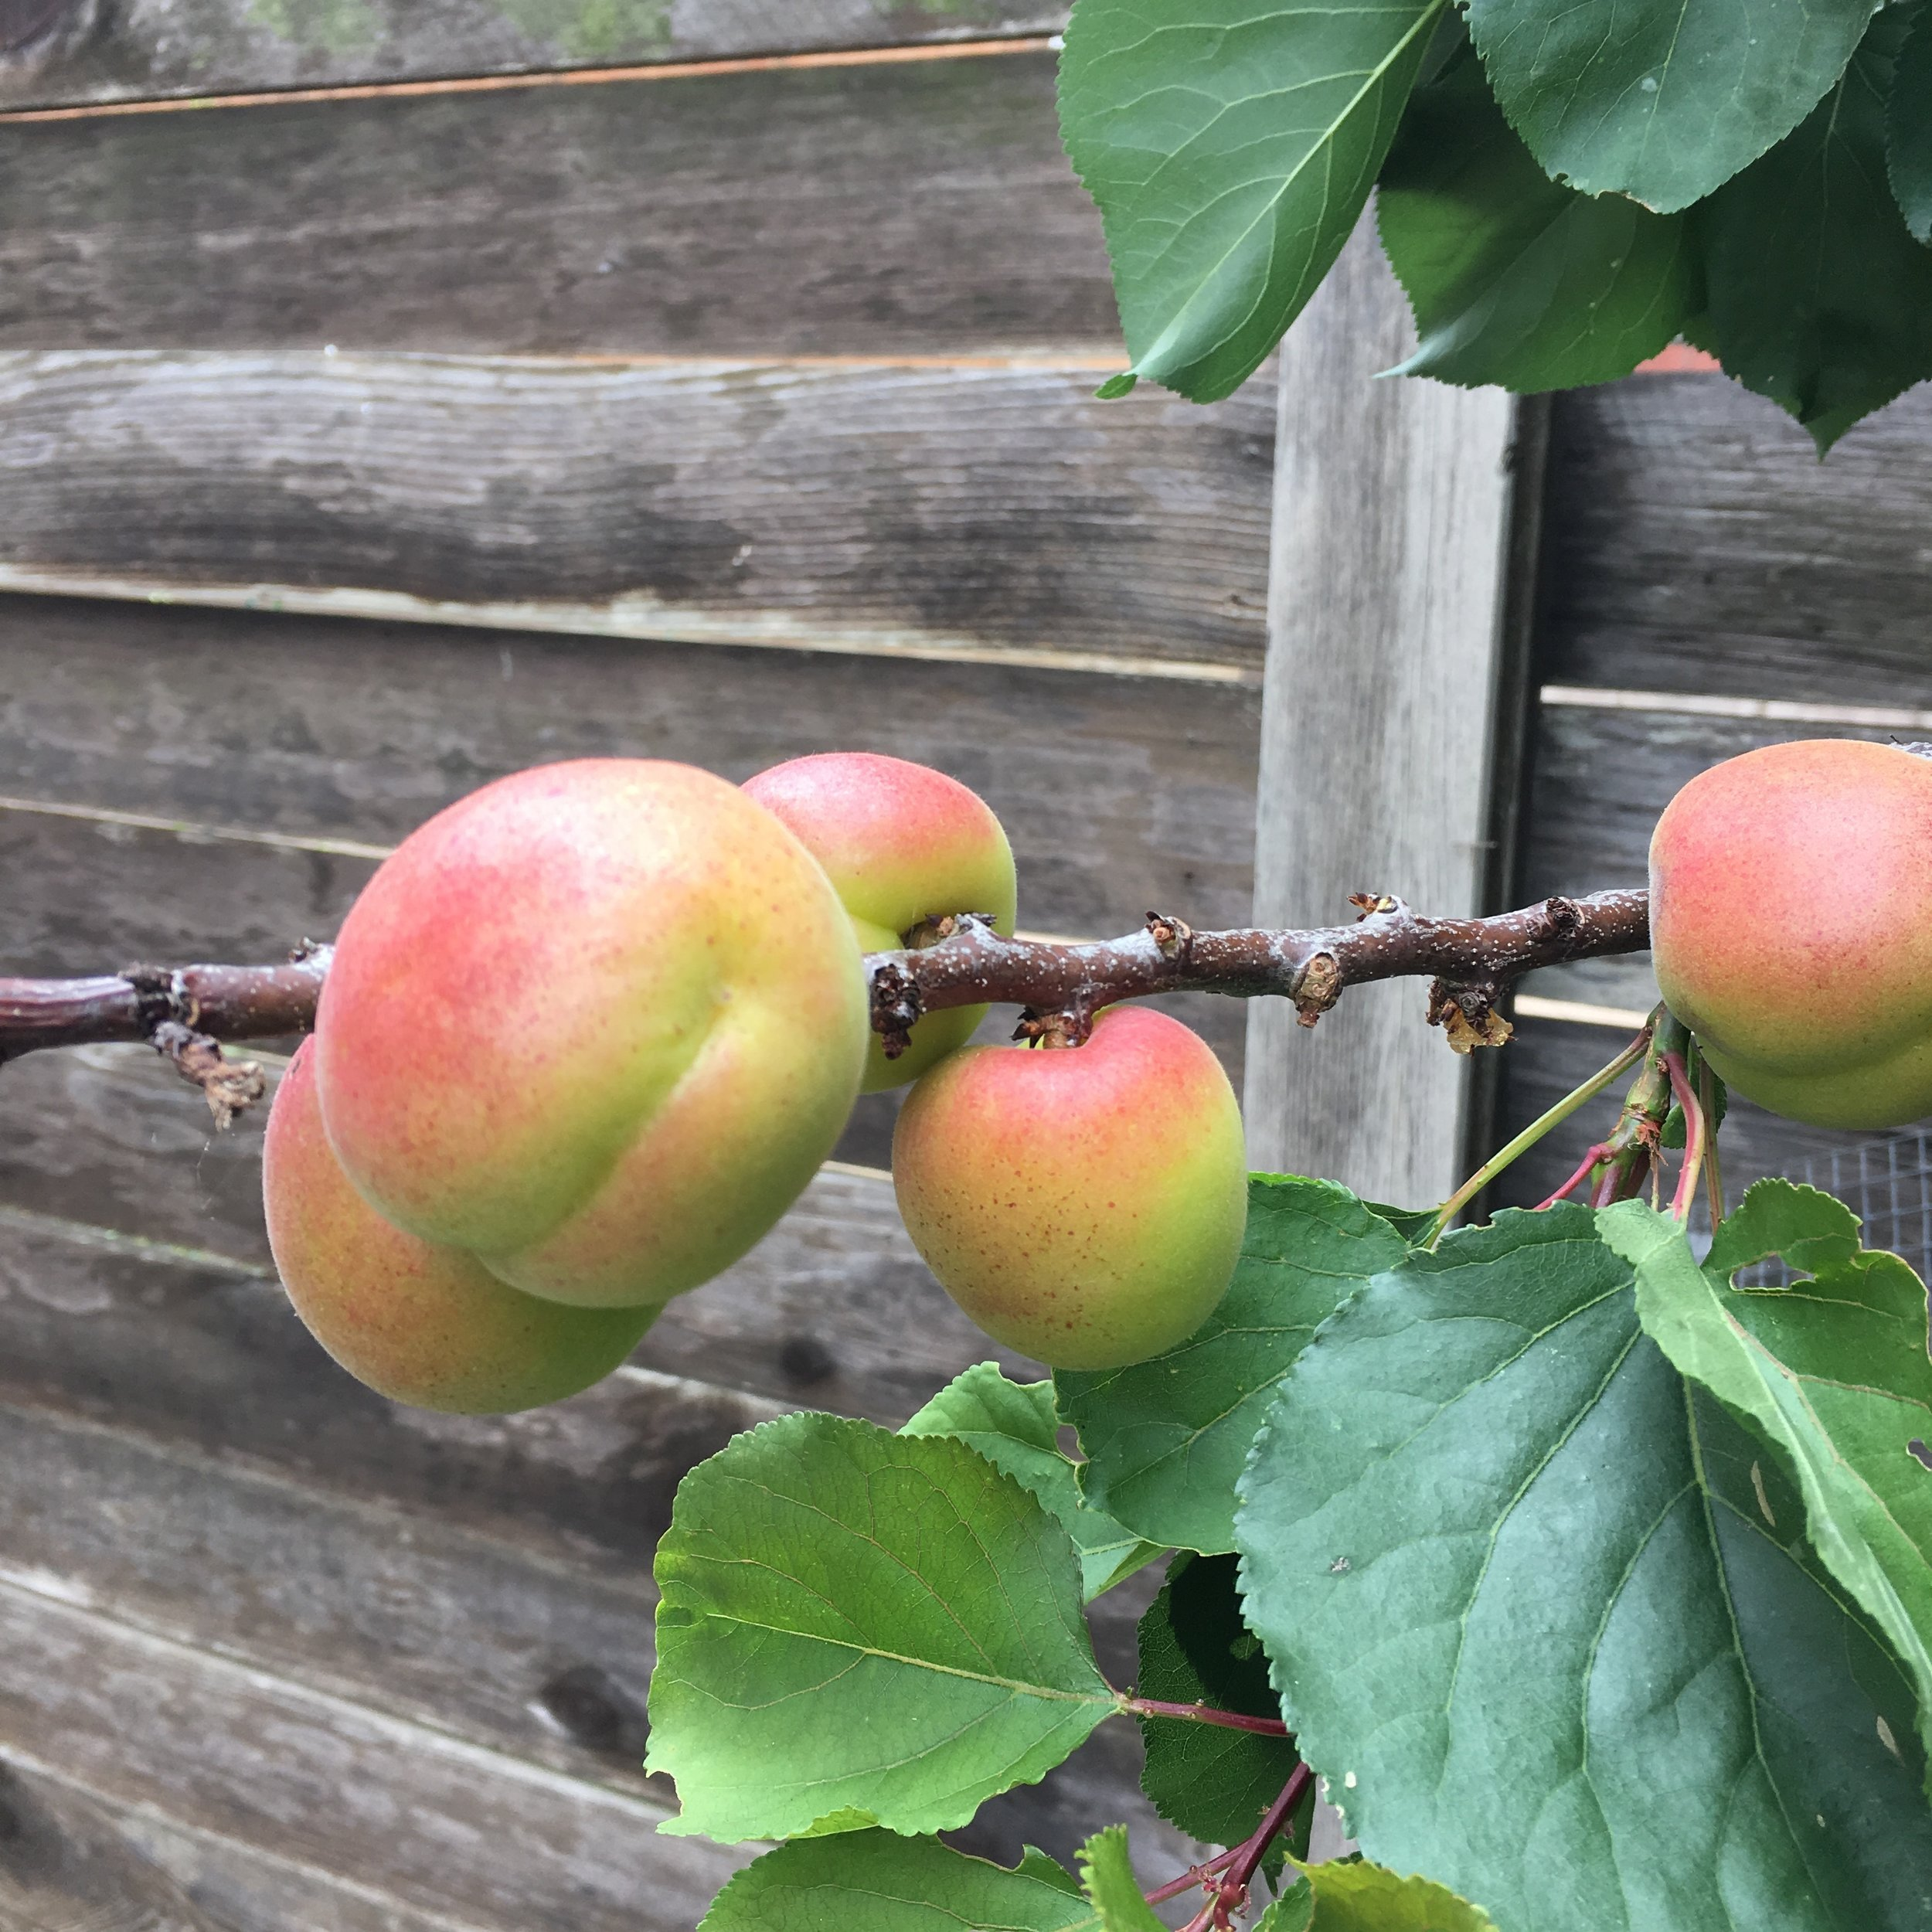 These are the yet-to-ripen 'Blenheim' (Royal) apricots that are a long-time California favorite. My parents grew this variety in their coastal, Southern California garden. It was a popular, lower-chill variety in the 1940's and 1950's.